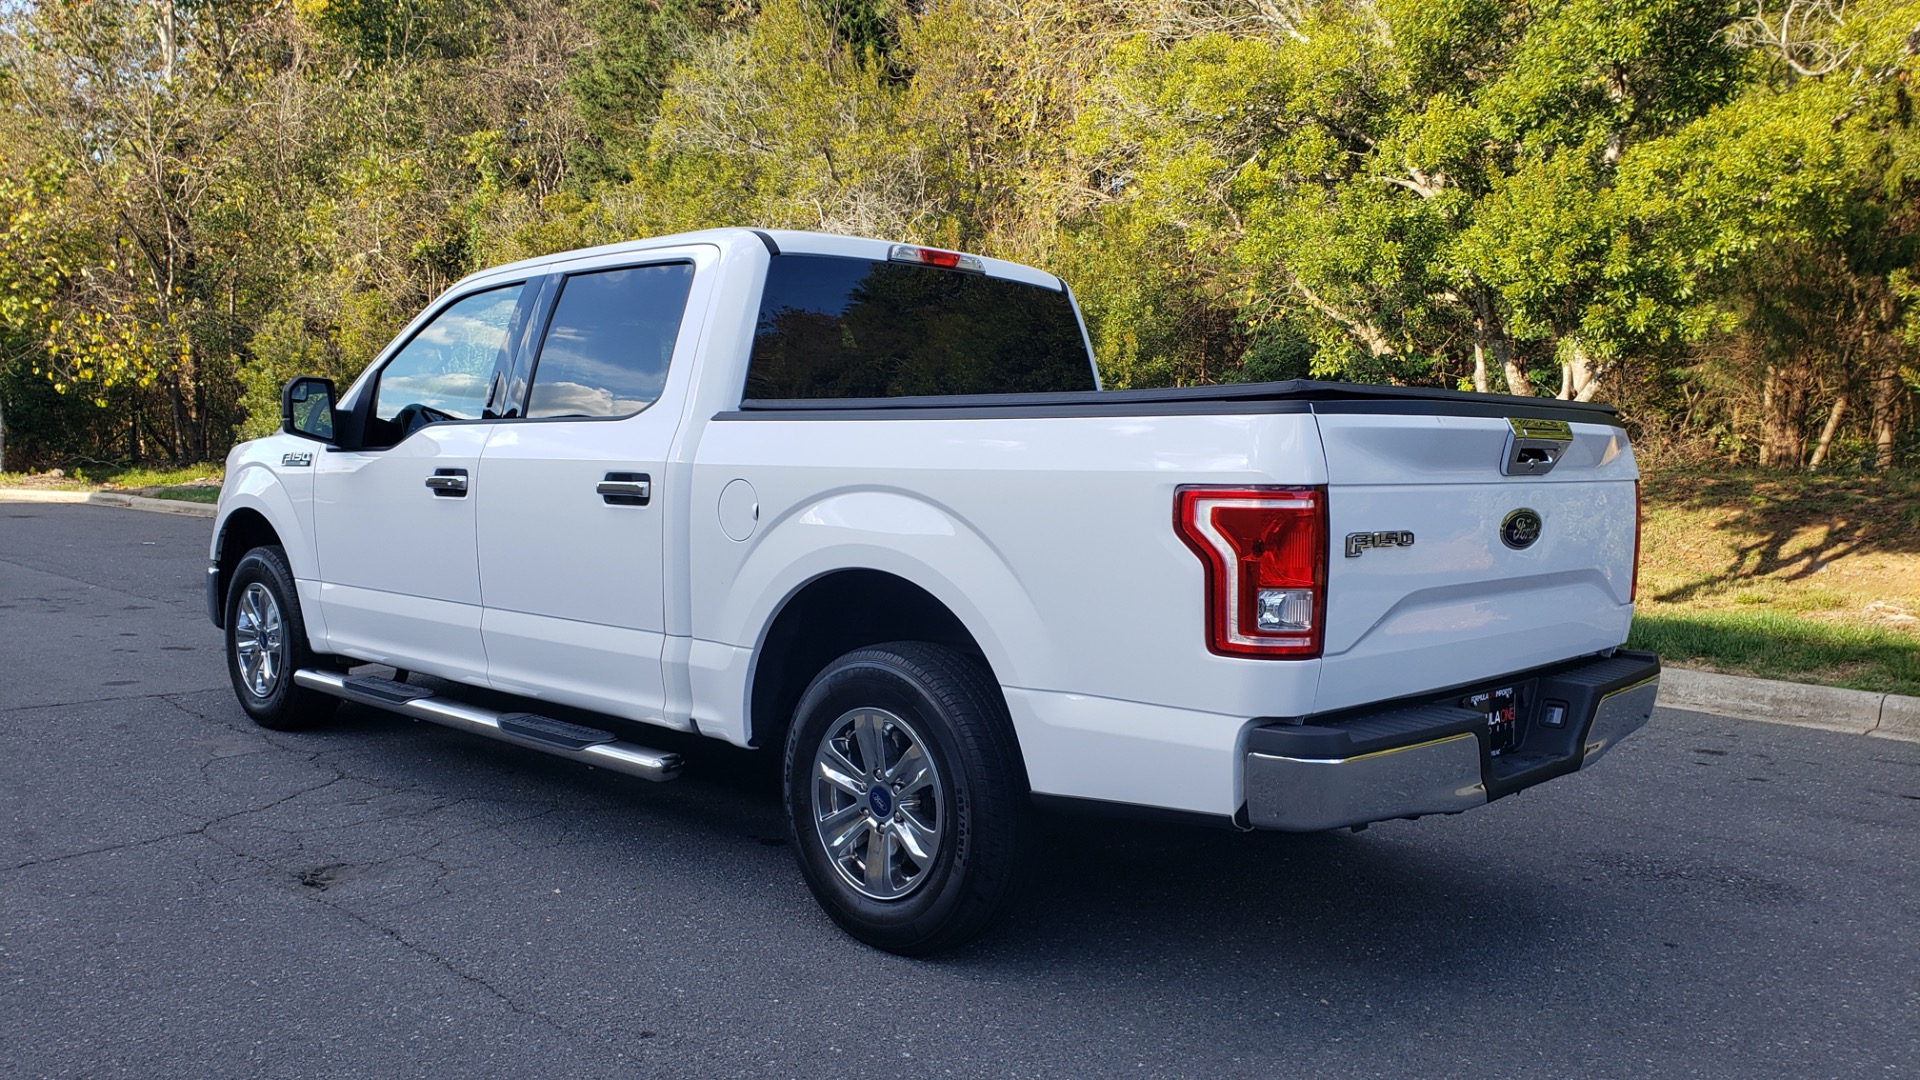 Used 2017 Ford F-150 XLT 4x2 SUPERCREW / V6 / AUTO / 145 WB / 5.6 BED for sale Sold at Formula Imports in Charlotte NC 28227 3